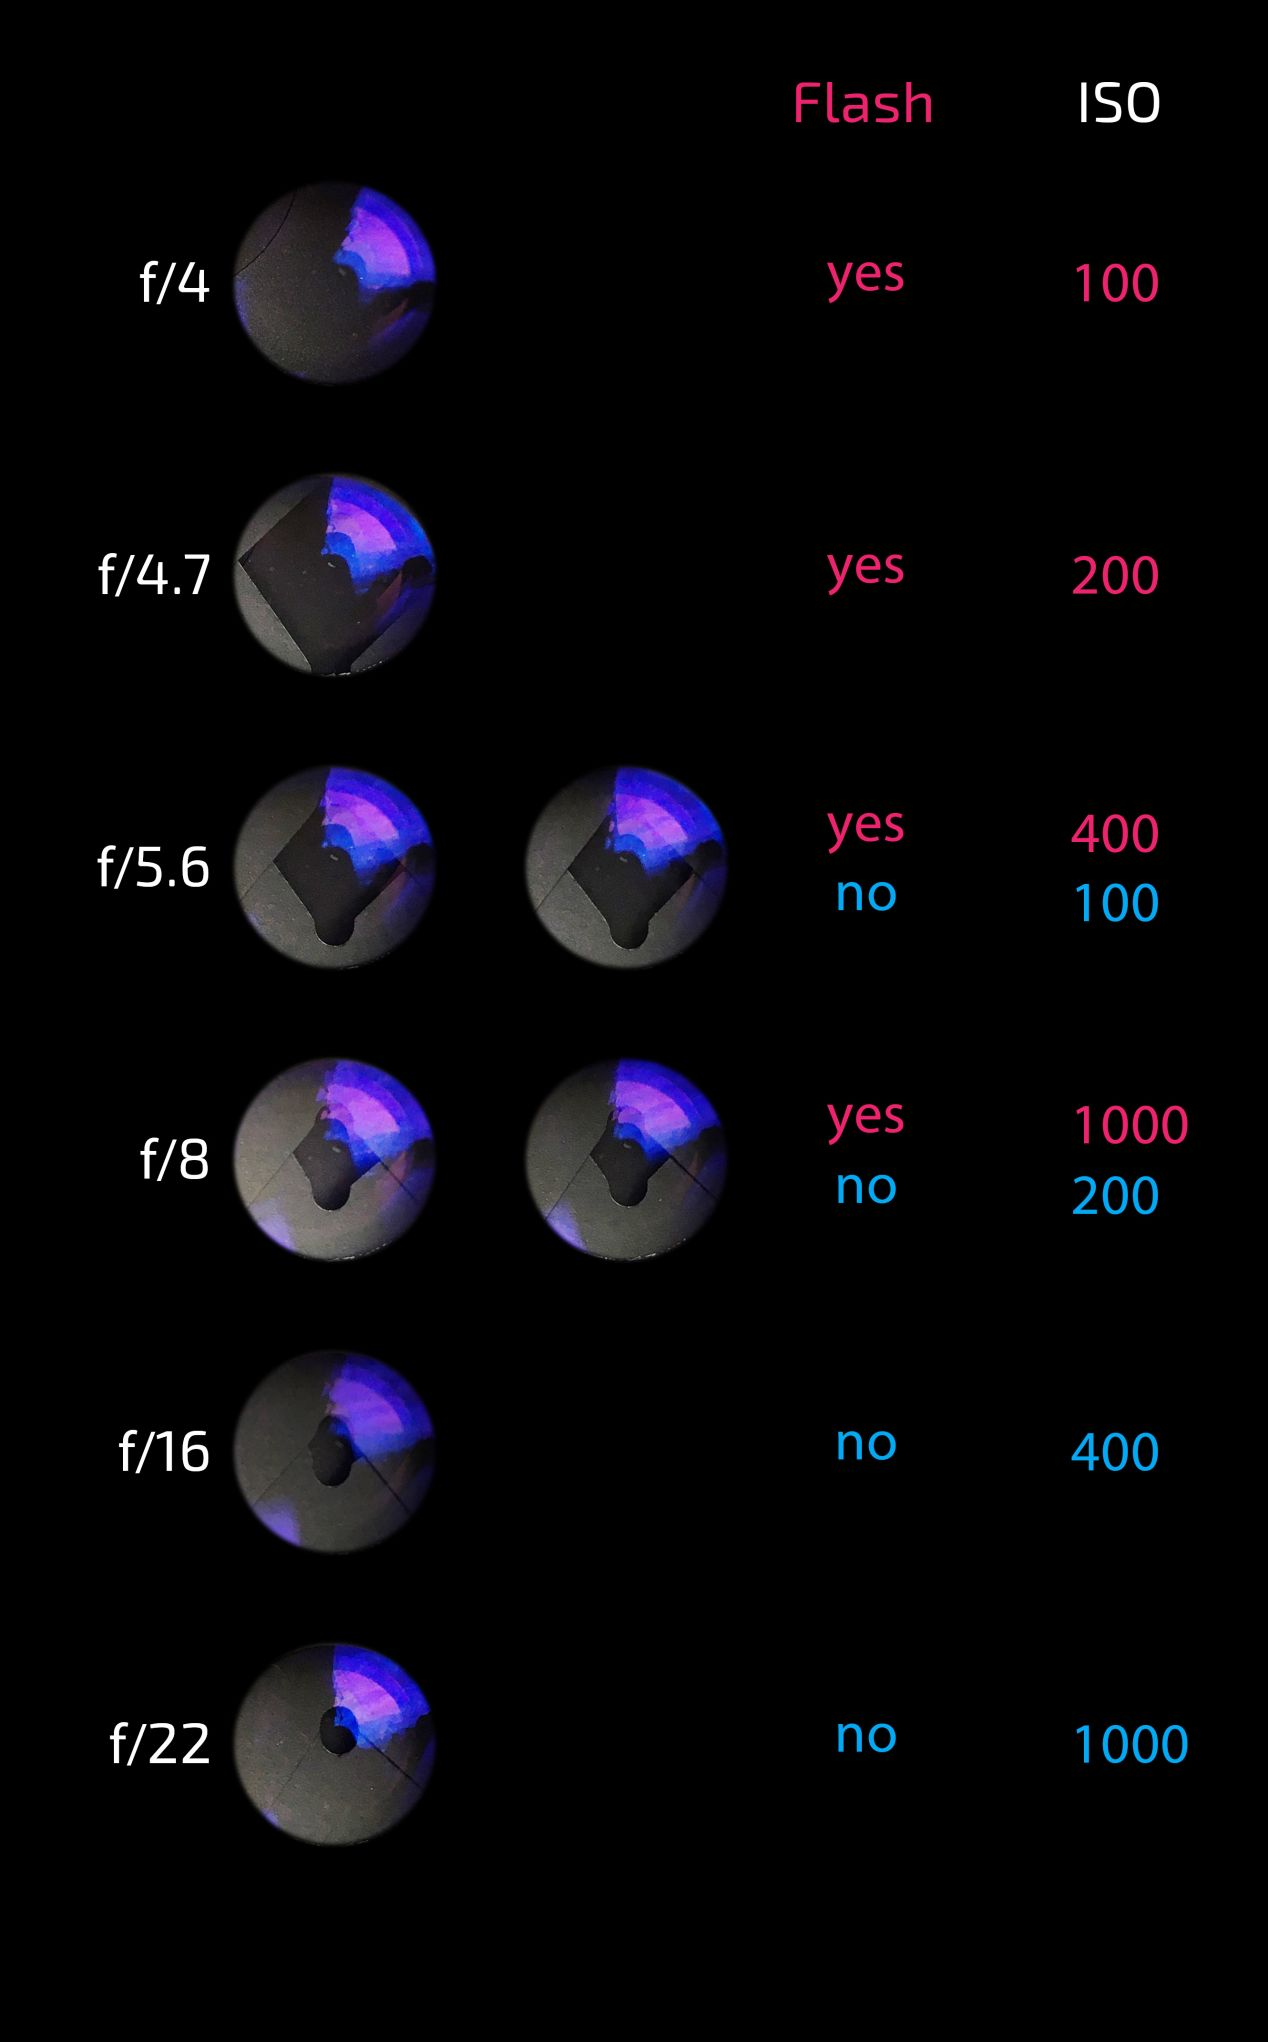 Controlling Ricoh YF-20's lens aperture with flash and ISO selectors.